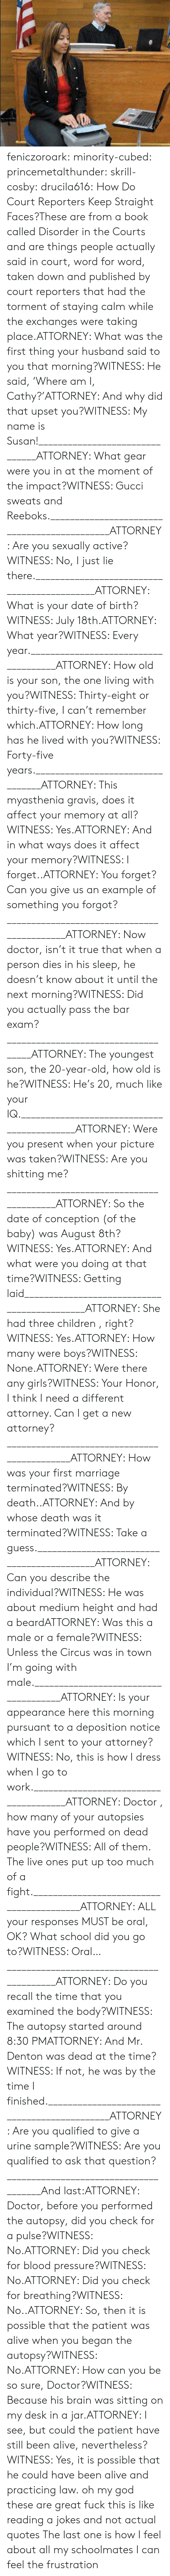 Yes It Is: feniczoroark:  minority-cubed:  princemetalthunder:  skrill-cosby:  drucila616:  How Do Court Reporters Keep Straight Faces?These are from a book called Disorder in the Courts and are things people actually said in court, word for word, taken down and published by court reporters that had the torment of staying calm while the exchanges were taking place.ATTORNEY: What was the first thing your husband said to you that morning?WITNESS: He said, 'Where am I, Cathy?'ATTORNEY: And why did that upset you?WITNESS: My name is Susan!_______________________________ATTORNEY: What gear were you in at the moment of the impact?WITNESS: Gucci sweats and Reeboks.____________________________________________ATTORNEY: Are you sexually active?WITNESS: No, I just lie there.____________________________________________ATTORNEY: What is your date of birth?WITNESS: July 18th.ATTORNEY: What year?WITNESS: Every year._____________________________________ATTORNEY: How old is your son, the one living with you?WITNESS: Thirty-eight or thirty-five, I can't remember which.ATTORNEY: How long has he lived with you?WITNESS: Forty-five years._________________________________ATTORNEY: This myasthenia gravis, does it affect your memory at all?WITNESS: Yes.ATTORNEY: And in what ways does it affect your memory?WITNESS: I forget..ATTORNEY: You forget? Can you give us an example of something you forgot?___________________________________________ATTORNEY: Now doctor, isn't it true that when a person dies in his sleep, he doesn't know about it until the next morning?WITNESS: Did you actually pass the bar exam?____________________________________ATTORNEY: The youngest son, the 20-year-old, how old is he?WITNESS: He's 20, much like your IQ.___________________________________________ATTORNEY: Were you present when your picture was taken?WITNESS: Are you shitting me?_________________________________________ATTORNEY: So the date of conception (of the baby) was August 8th?WITNESS: Yes.ATTORNEY: And what were you doing at that time?WITNESS: Getting laid____________________________________________ATTORNEY: She had three children , right?WITNESS: Yes.ATTORNEY: How many were boys?WITNESS: None.ATTORNEY: Were there any girls?WITNESS: Your Honor, I think I need a different attorney. Can I get a new attorney?____________________________________________ATTORNEY: How was your first marriage terminated?WITNESS: By death..ATTORNEY: And by whose death was it terminated?WITNESS: Take a guess.___________________________________________ATTORNEY: Can you describe the individual?WITNESS: He was about medium height and had a beardATTORNEY: Was this a male or a female?WITNESS: Unless the Circus was in town I'm going with male._____________________________________ATTORNEY: Is your appearance here this morning pursuant to a deposition notice which I sent to your attorney?WITNESS: No, this is how I dress when I go to work.______________________________________ATTORNEY: Doctor , how many of your autopsies have you performed on dead people?WITNESS: All of them. The live ones put up too much of a fight._________________________________________ATTORNEY: ALL your responses MUST be oral, OK? What school did you go to?WITNESS: Oral…_________________________________________ATTORNEY: Do you recall the time that you examined the body?WITNESS: The autopsy started around 8:30 PMATTORNEY: And Mr. Denton was dead at the time?WITNESS: If not, he was by the time I finished.____________________________________________ATTORNEY: Are you qualified to give a urine sample?WITNESS: Are you qualified to ask that question?______________________________________And last:ATTORNEY: Doctor, before you performed the autopsy, did you check for a pulse?WITNESS: No.ATTORNEY: Did you check for blood pressure?WITNESS: No.ATTORNEY: Did you check for breathing?WITNESS: No..ATTORNEY: So, then it is possible that the patient was alive when you began the autopsy?WITNESS: No.ATTORNEY: How can you be so sure, Doctor?WITNESS: Because his brain was sitting on my desk in a jar.ATTORNEY: I see, but could the patient have still been alive, nevertheless?WITNESS: Yes, it is possible that he could have been alive and practicing law.  oh my god these are great  fuck this is like reading a jokes and not actual quotes   The last one is how I feel about all my schoolmates  I can feel the frustration